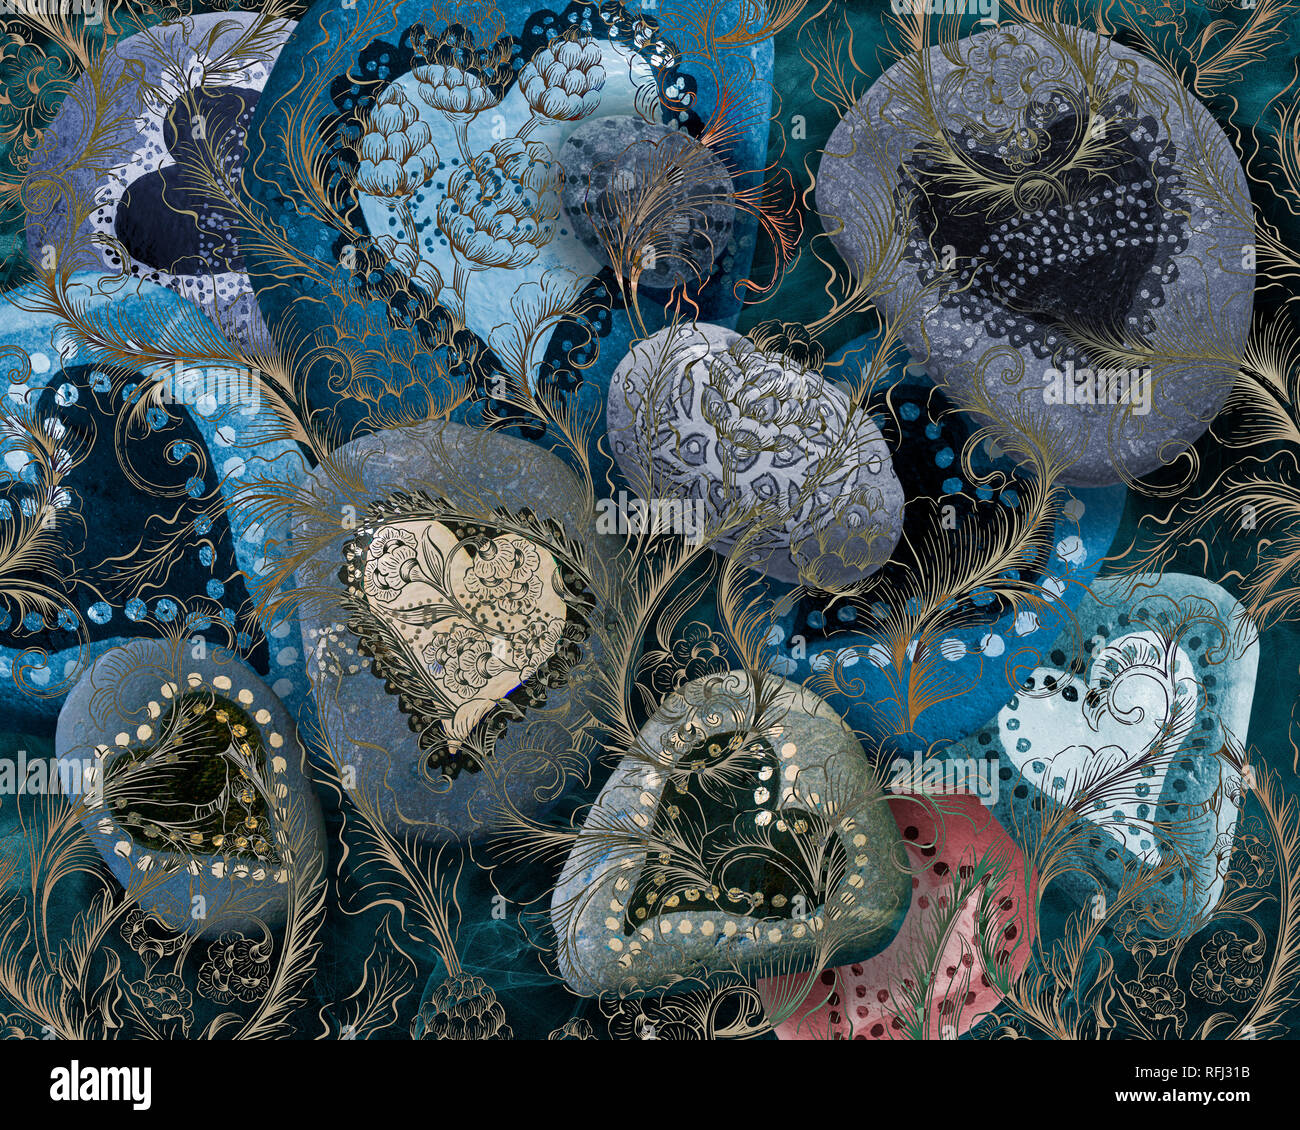 DIGITAL ART: Valentine's card design (Pebble art by Ruth Dawson) - Stock Image